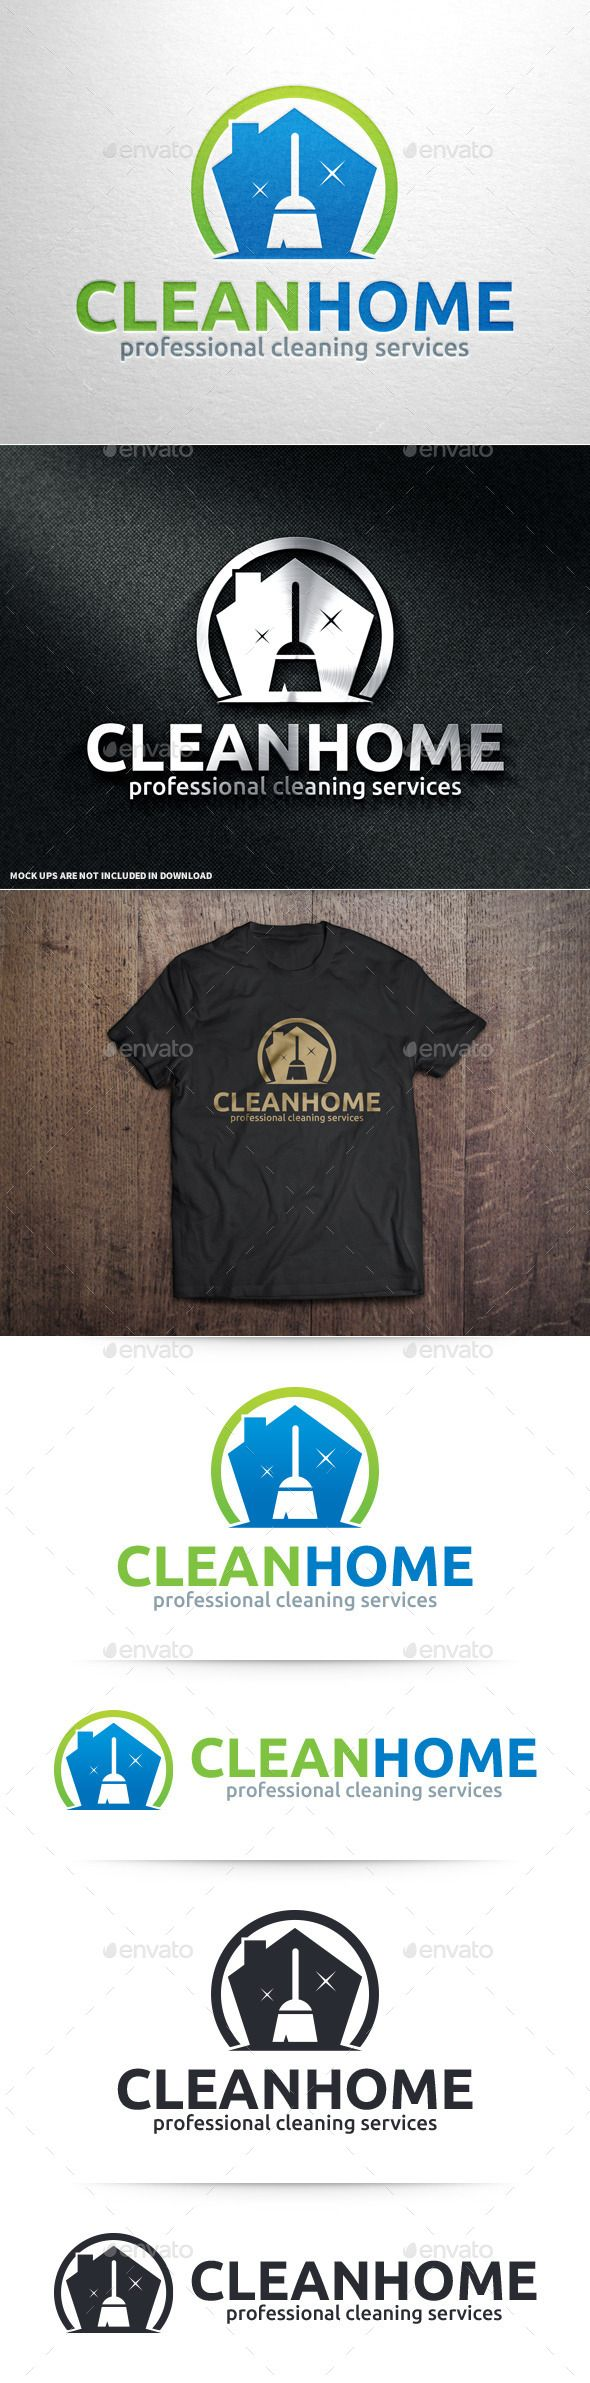 Clean Home Logo Template — Vector EPS #blink #floor • Available here → https://graphicriver.net/item/clean-home-logo-template/10992473?ref=pxcr